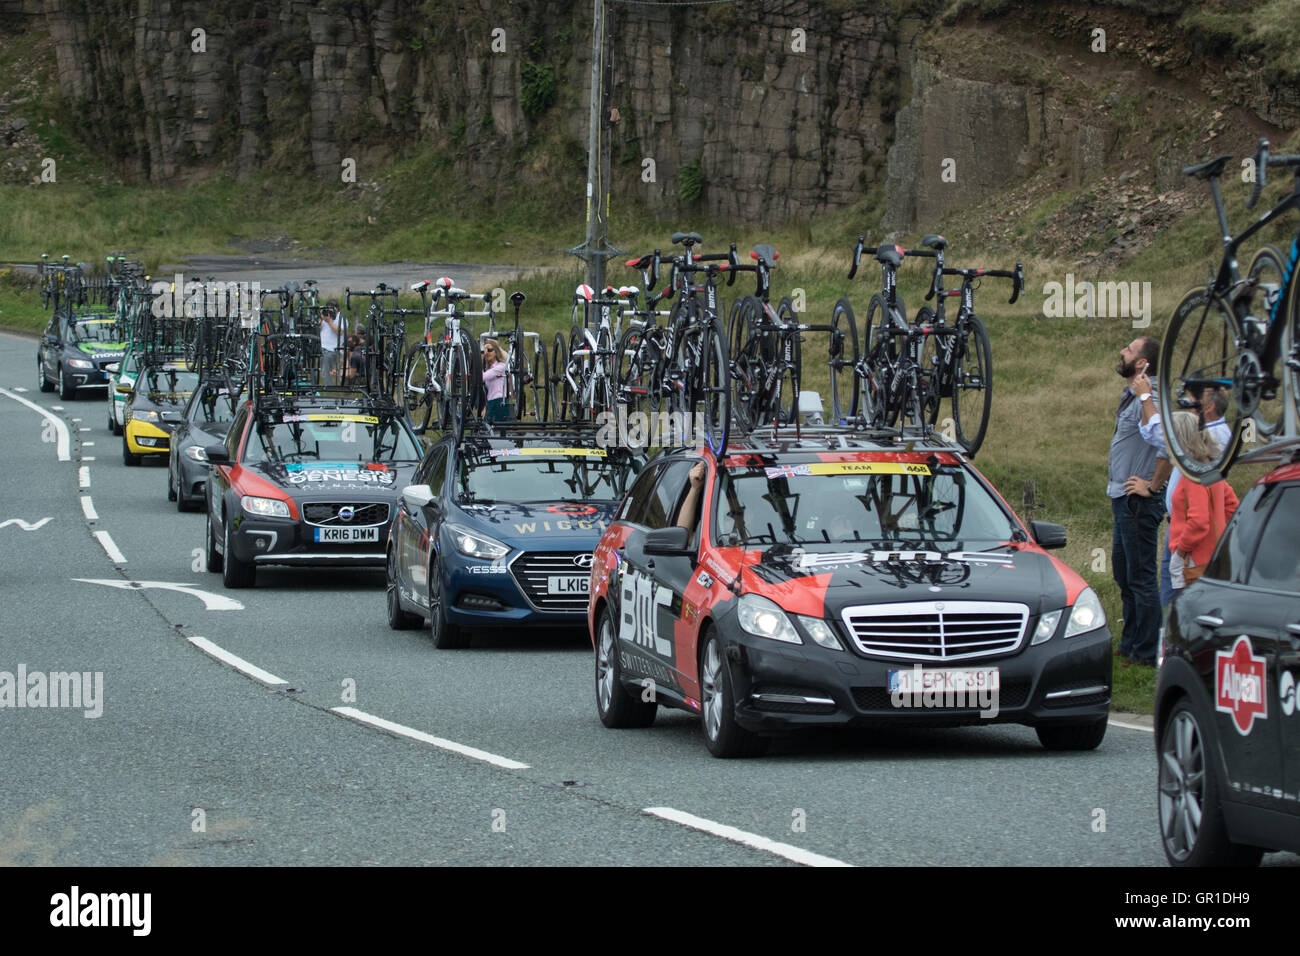 Cheshire, UK. 6th September, 2016. Support cars behind the peloton during the climb to the Cat and Fiddle. Credit: Stock Photo